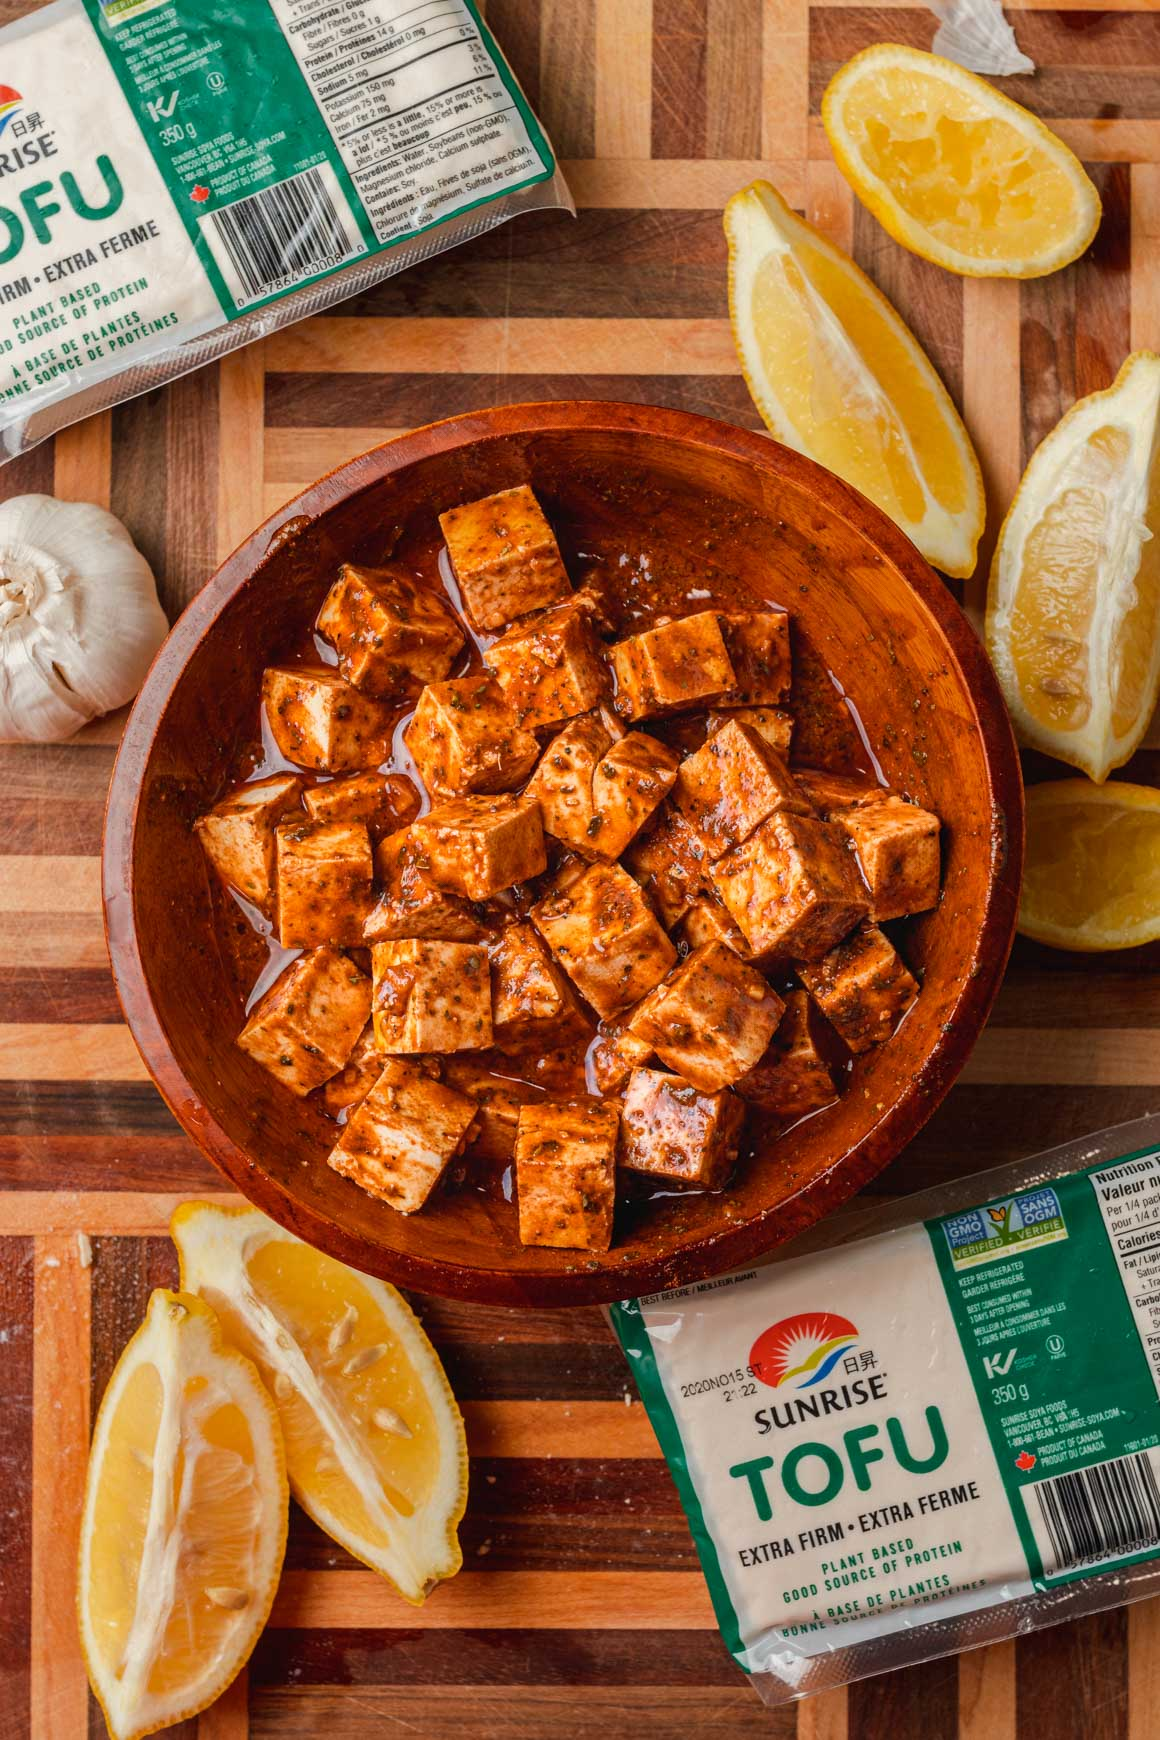 Extra firm tofu in marinade